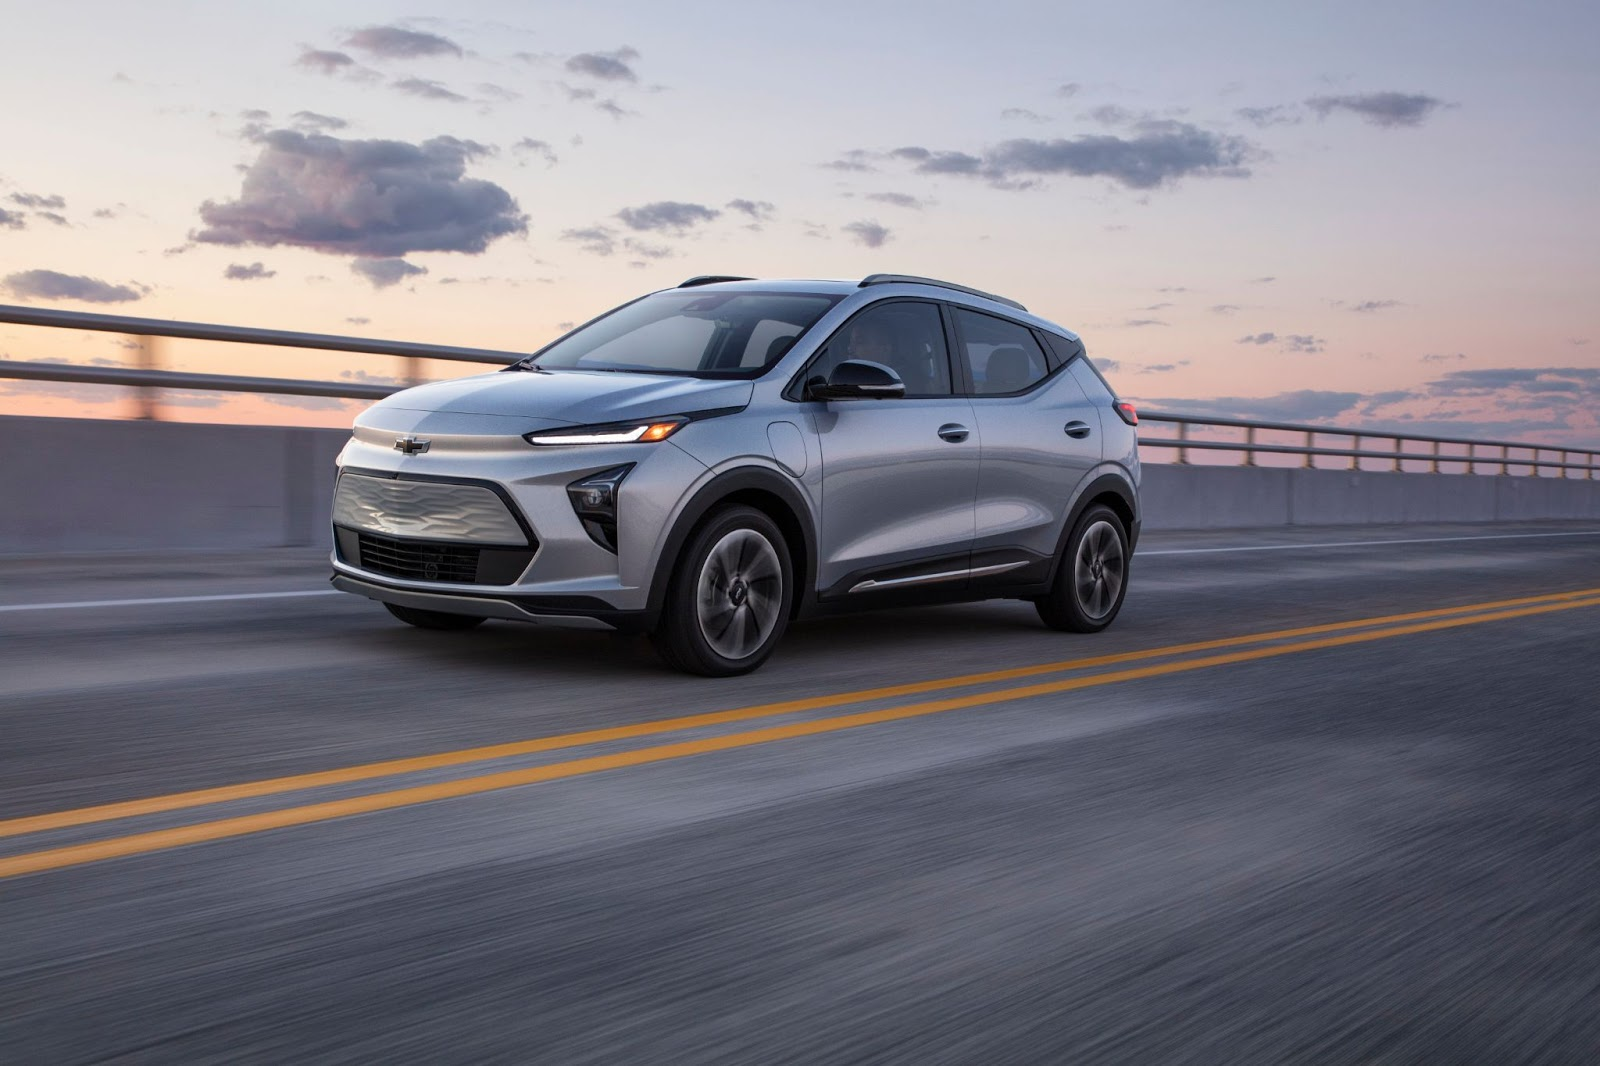 All The Latest On The 2022 Chevrolet Bolt EV